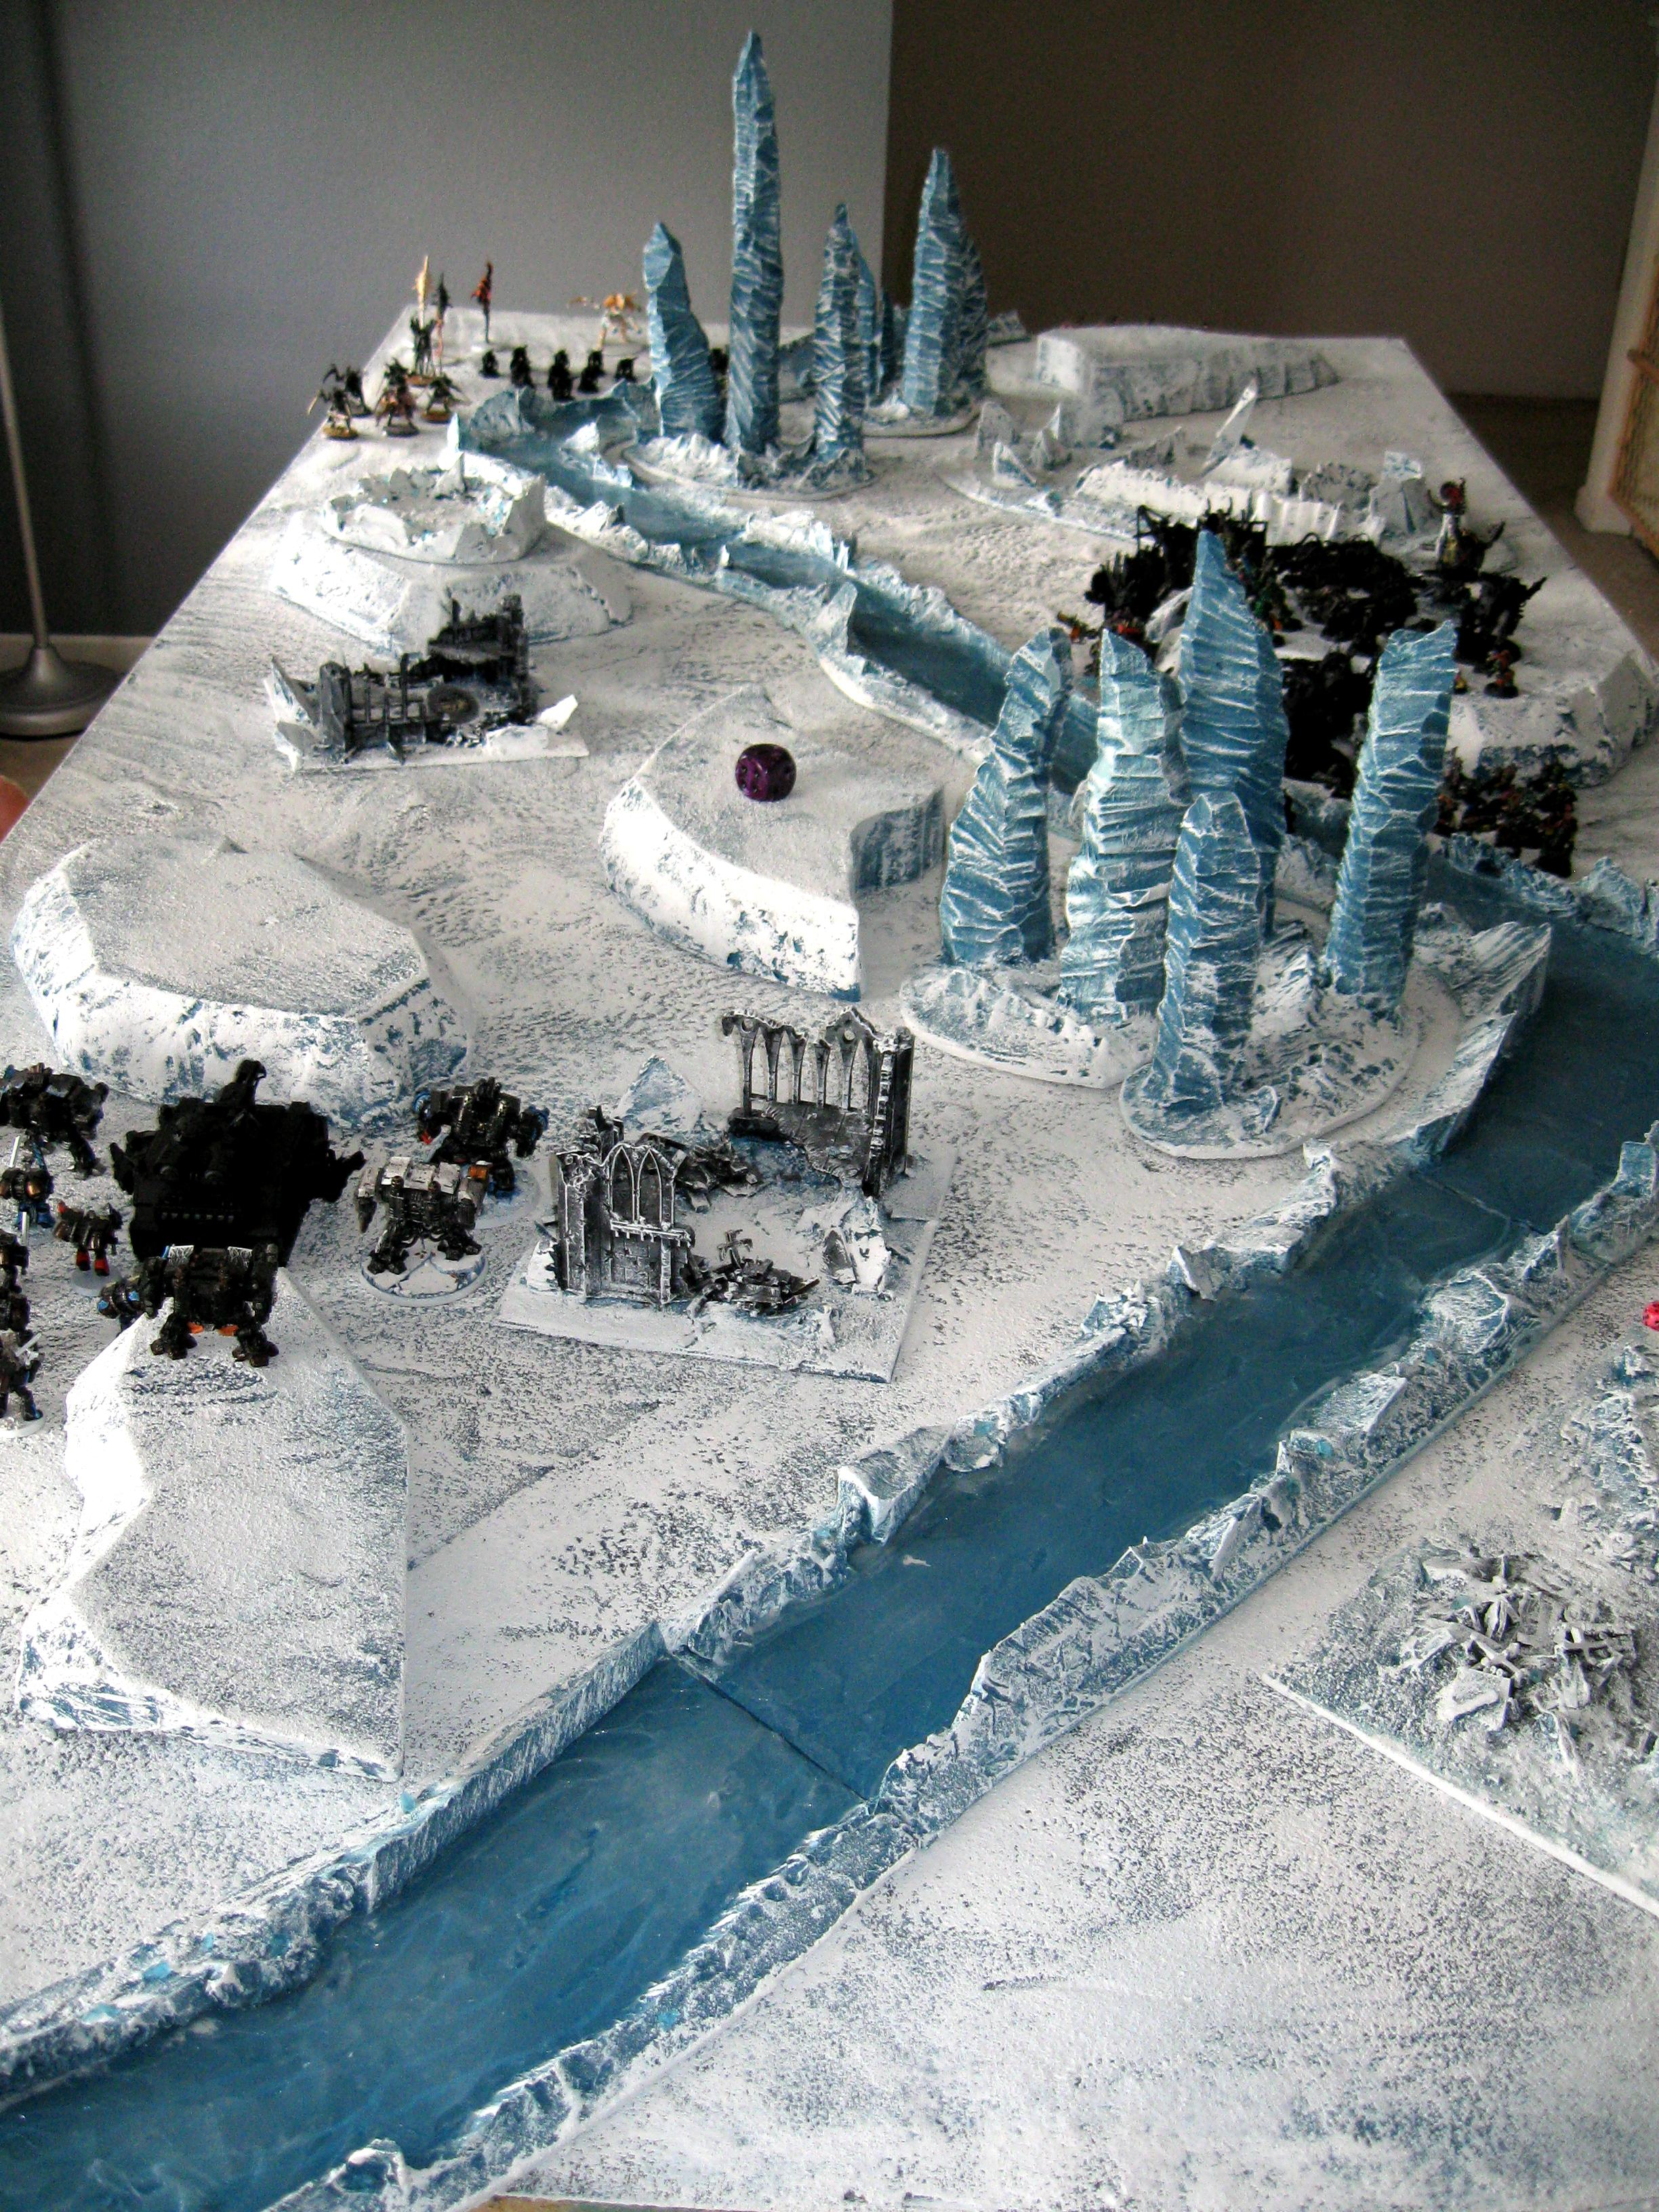 Battle, Dreadnought, Ice Angels, Ice Terrain, Ice World, Orks, River, Space Marines, Tyranids, Warhammer 40,000